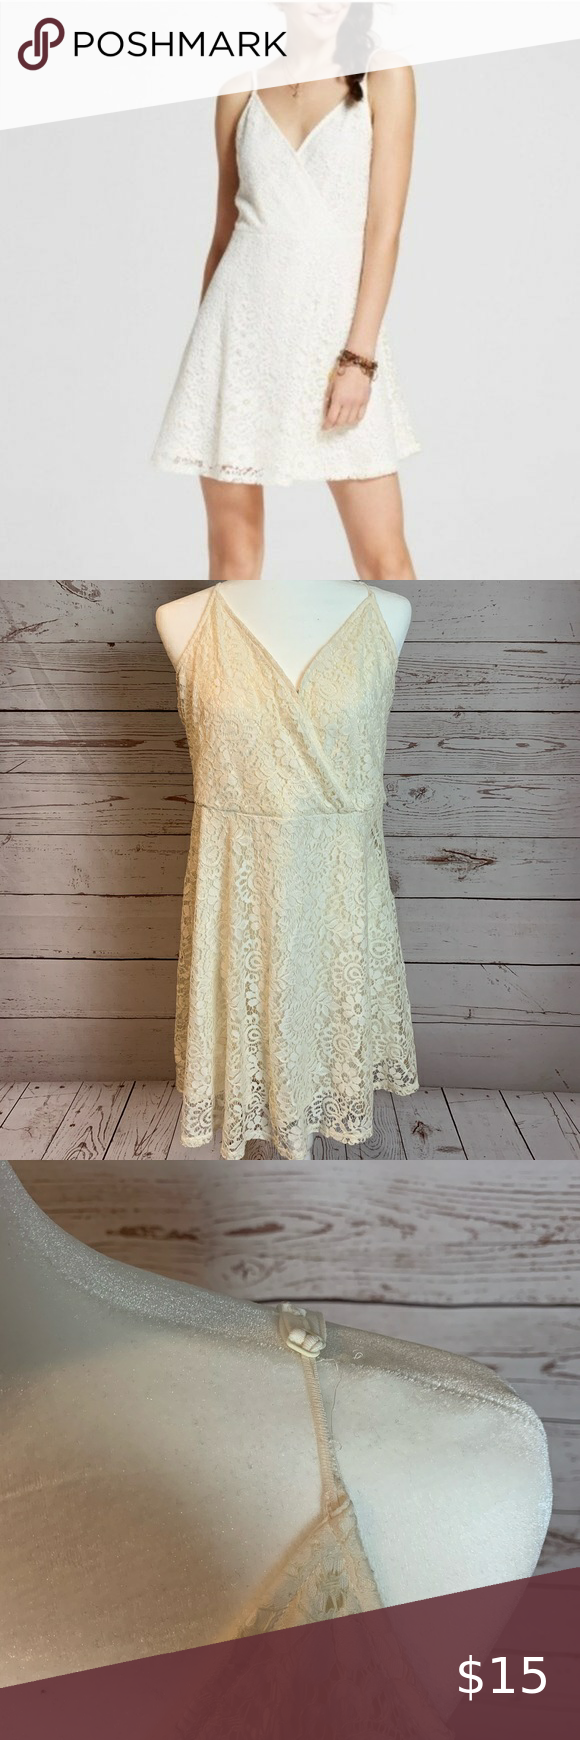 White Lace Overlay Dress 5 30 Lace Overlay Dress Dresses Lace Overlay [ 1740 x 580 Pixel ]